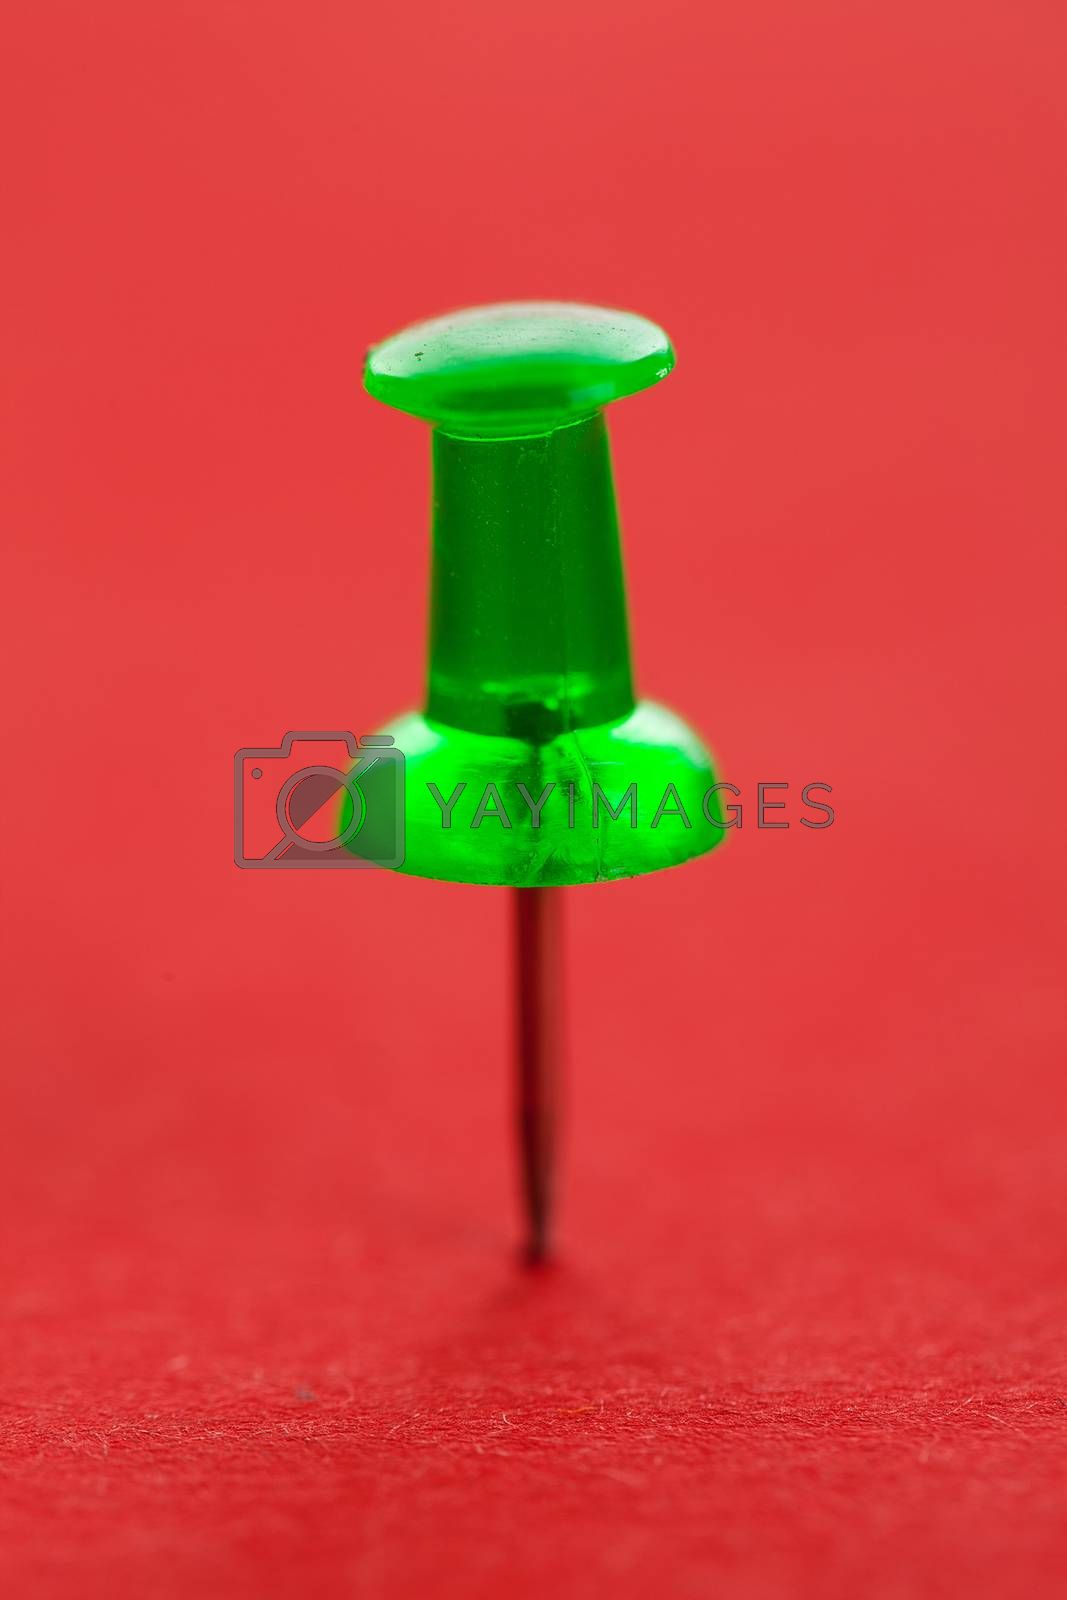 Green pushpin on a red surface